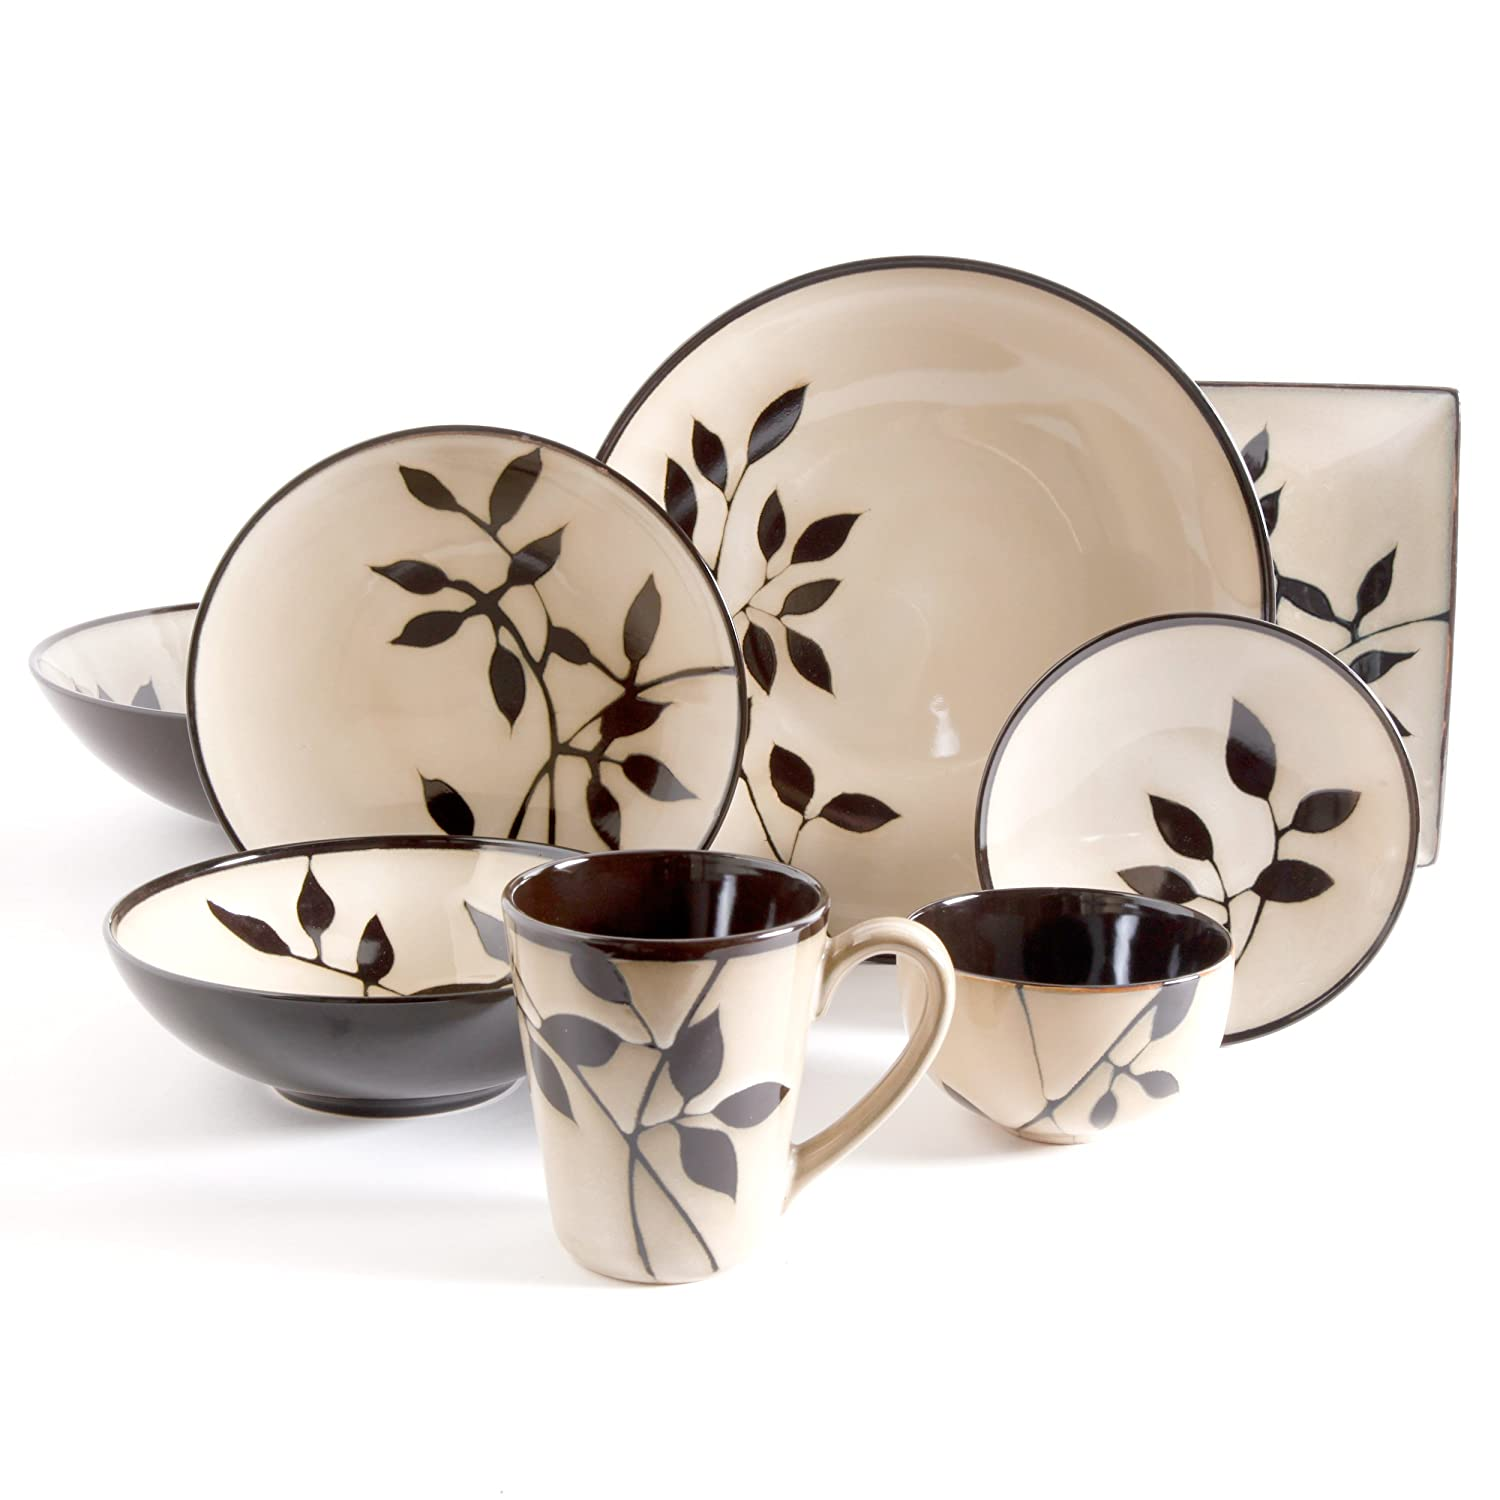 Amazon.com Gibson Elite Kai 16 Piece Dinnerware Set with Onyx Reactive Glaze Cream Kitchen \u0026 Dining  sc 1 st  Amazon.com & Amazon.com: Gibson Elite Kai 16 Piece Dinnerware Set with Onyx ...